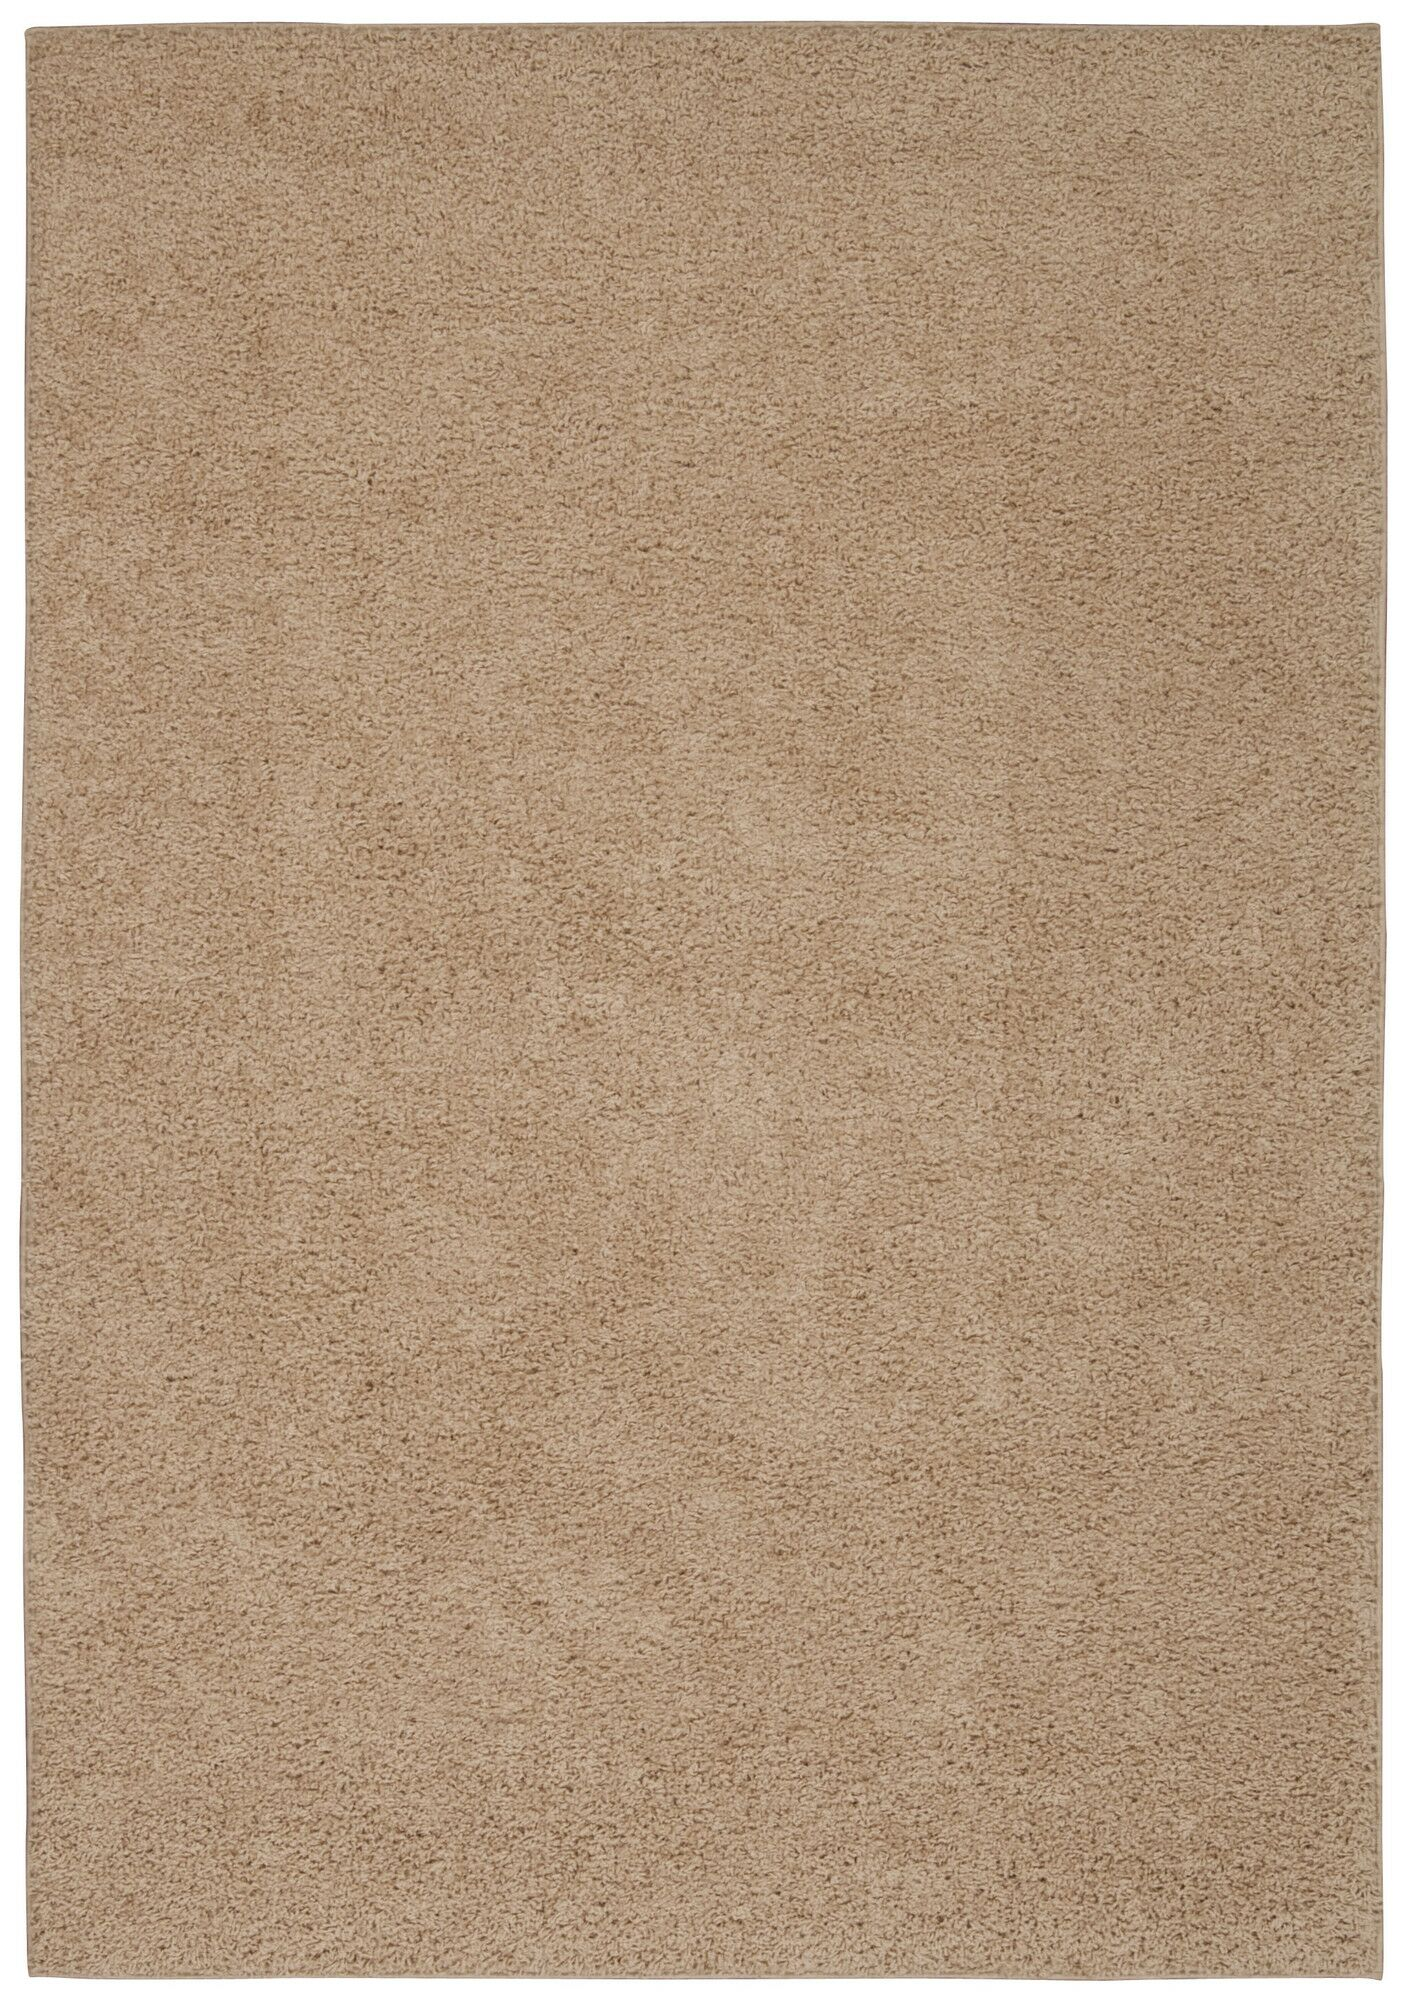 Shibata Beige Area Rug Rug Size: Rectangle 8'2